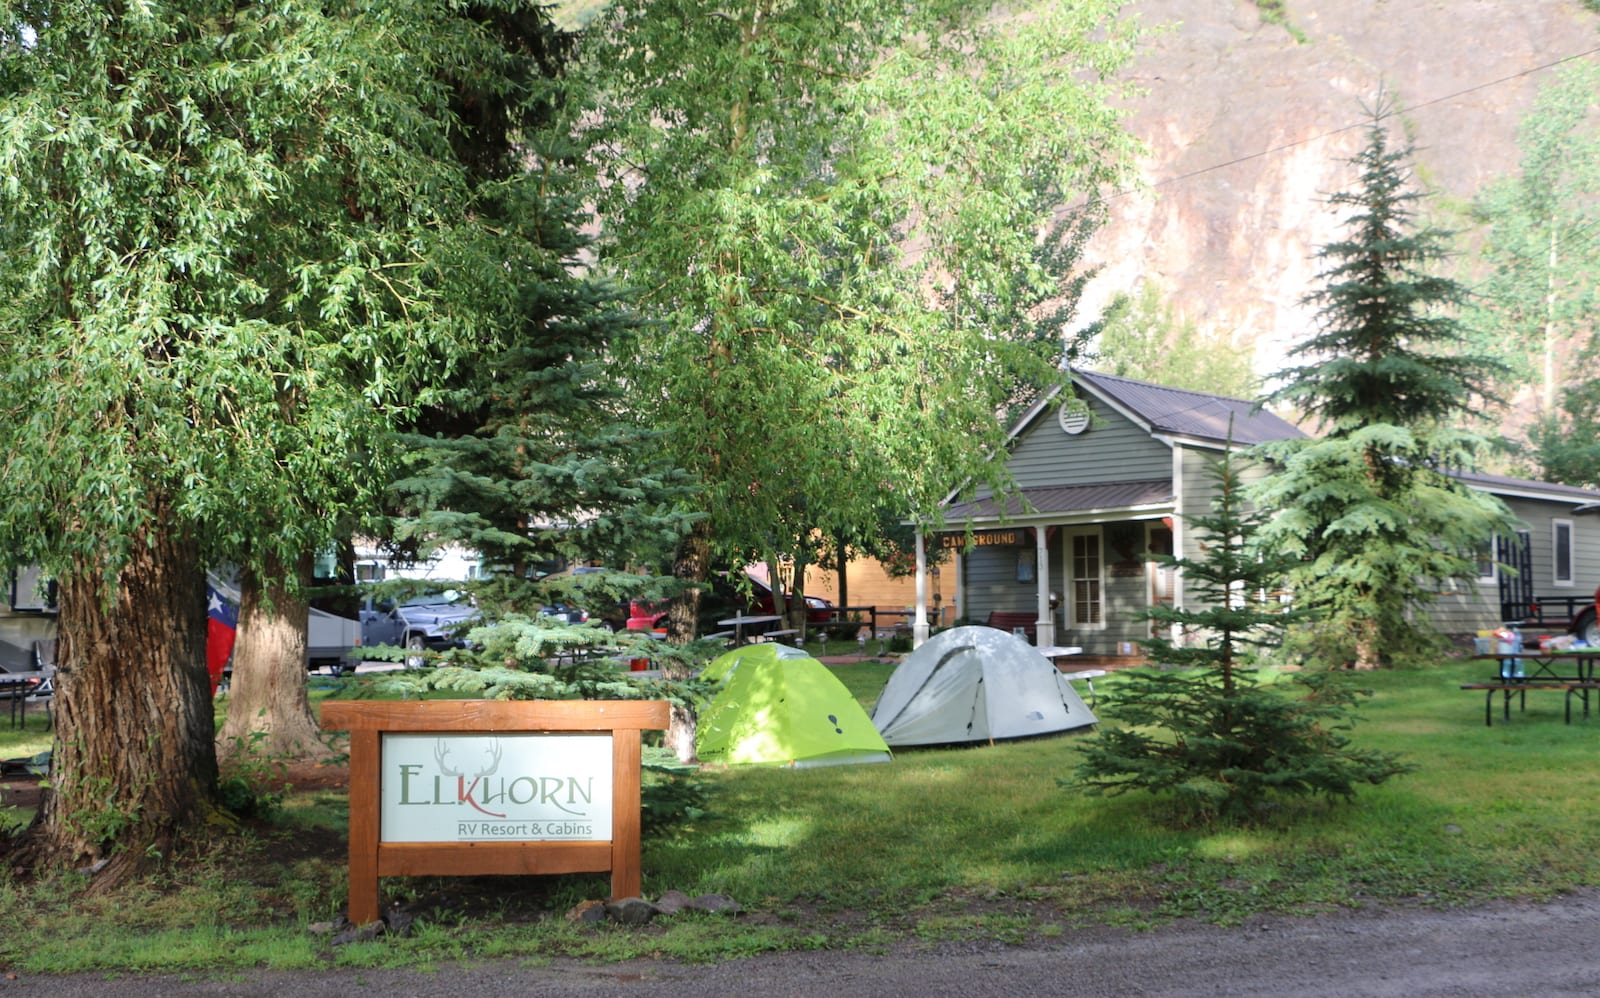 Tent Camping near Lake City, CO at Elkhorn RV Resort and Cabins